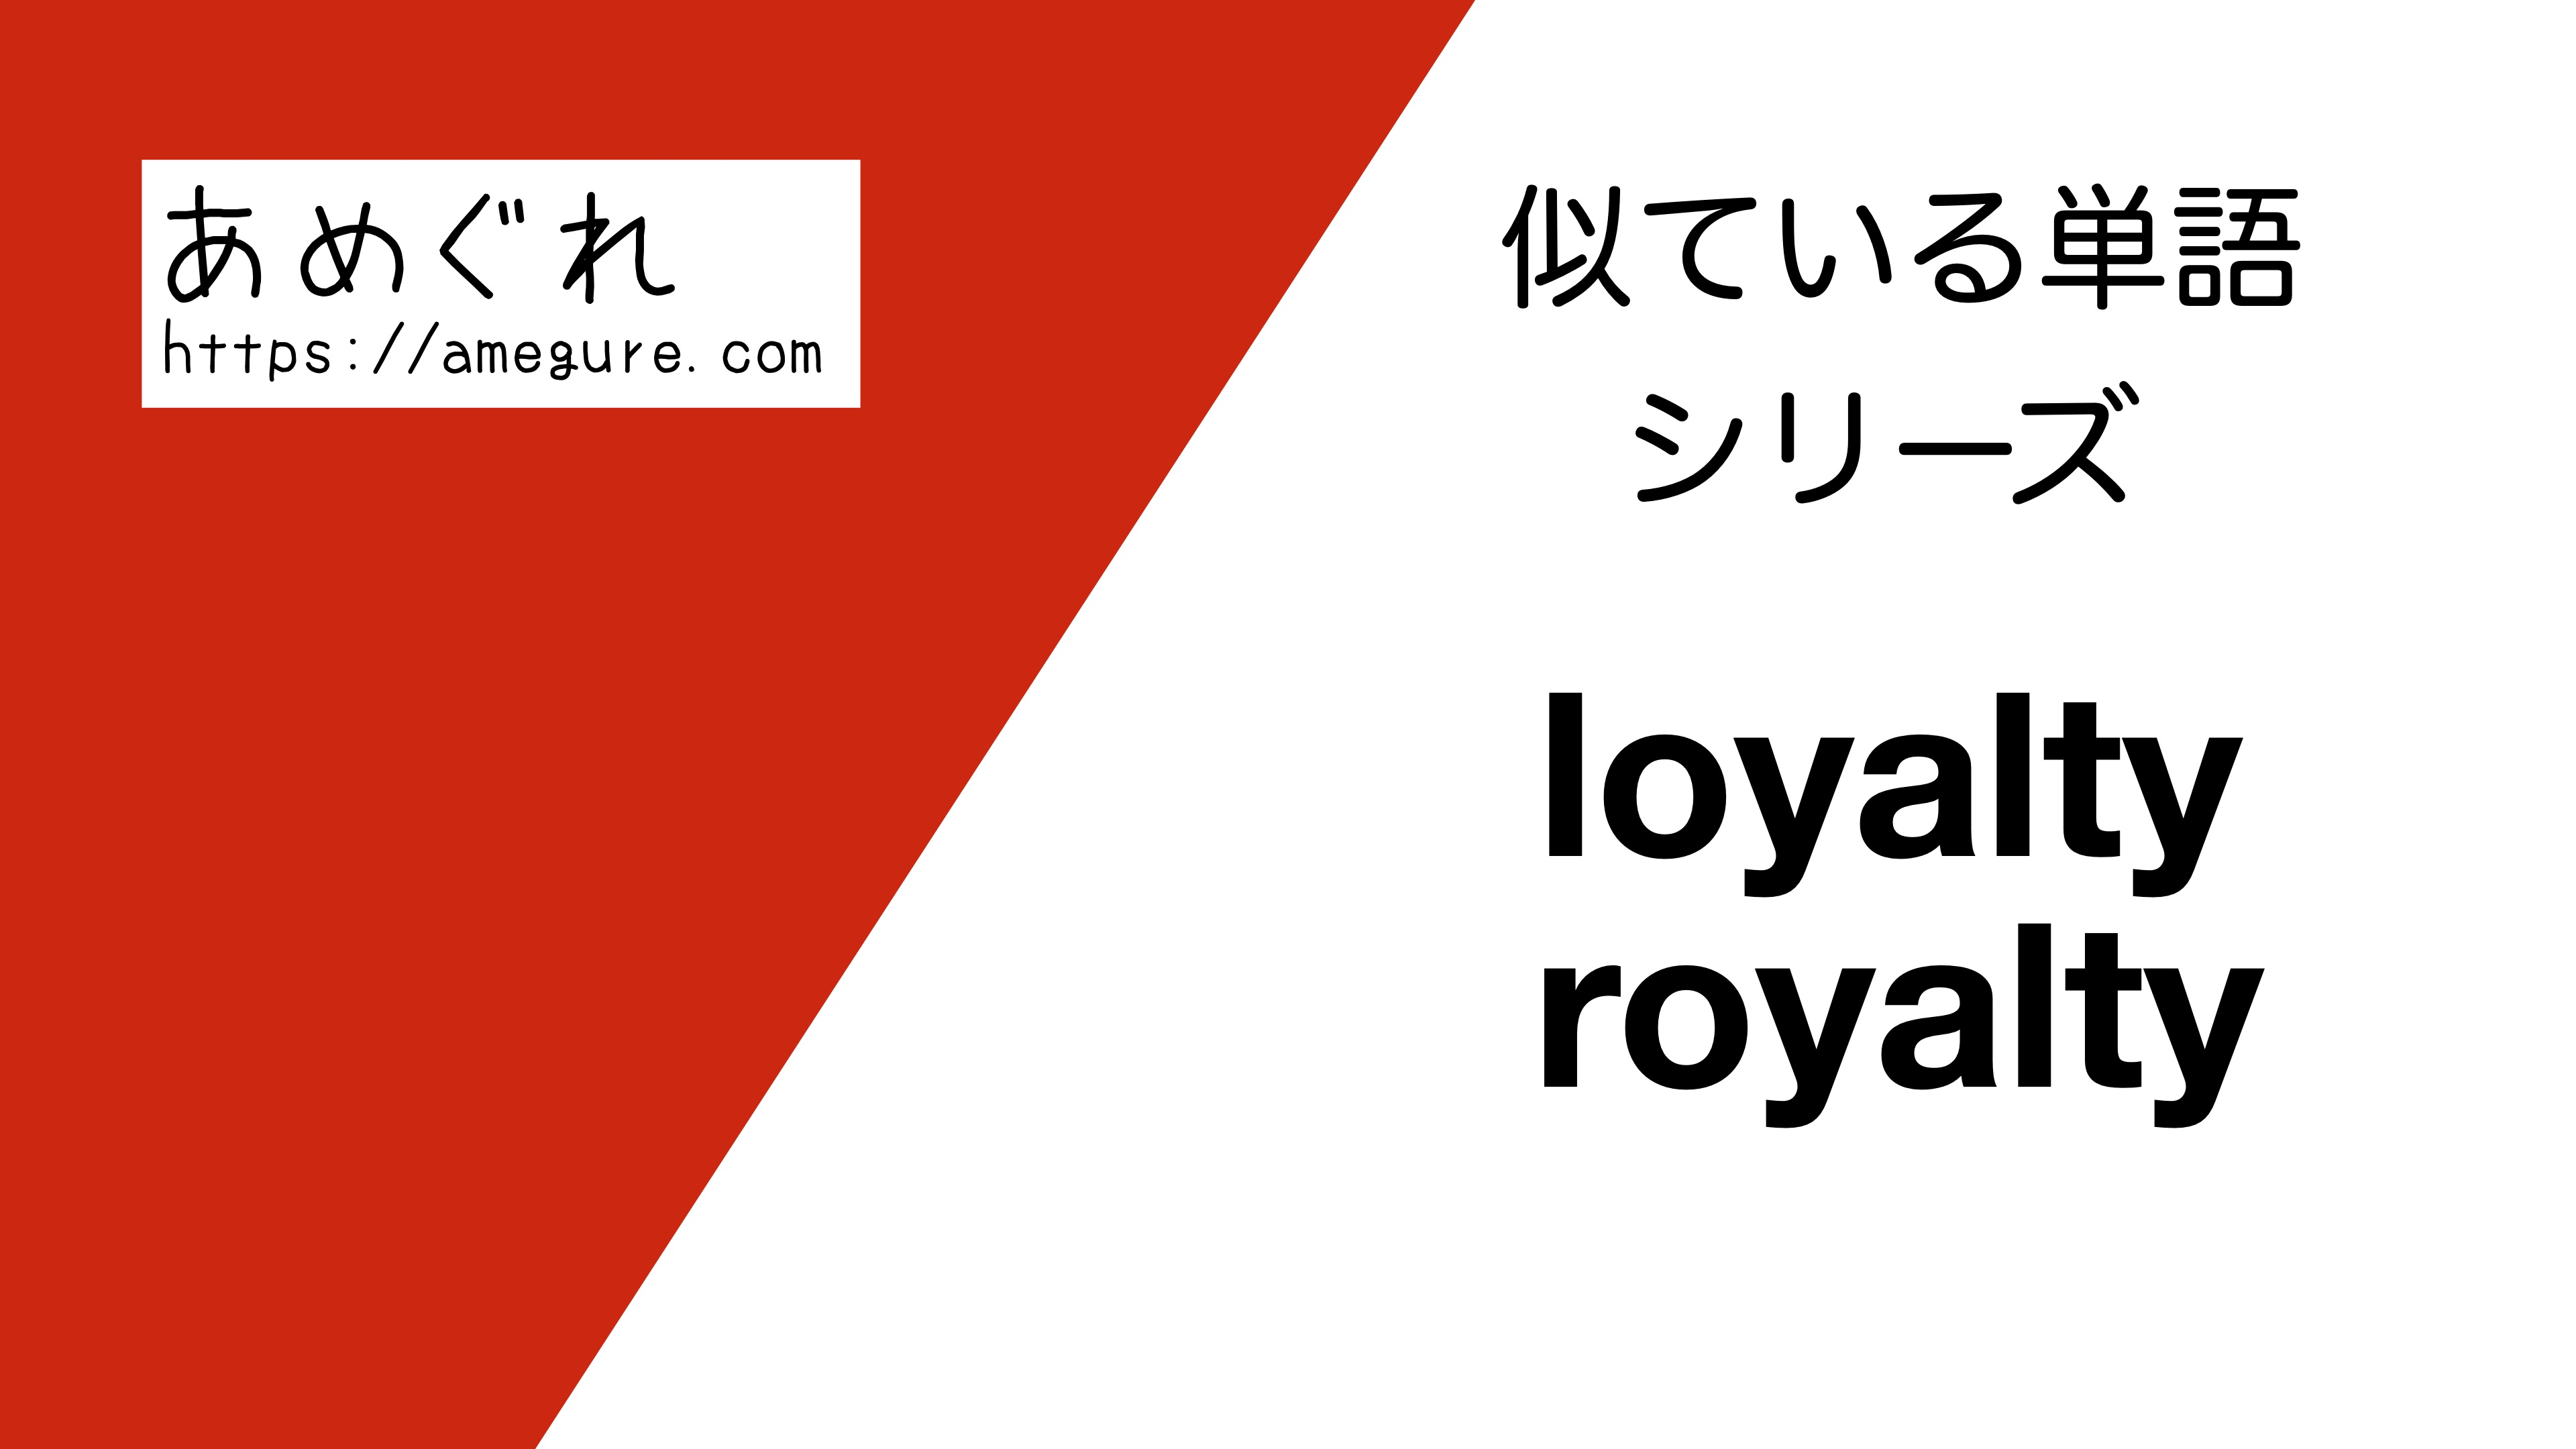 loyalty-royalty違い